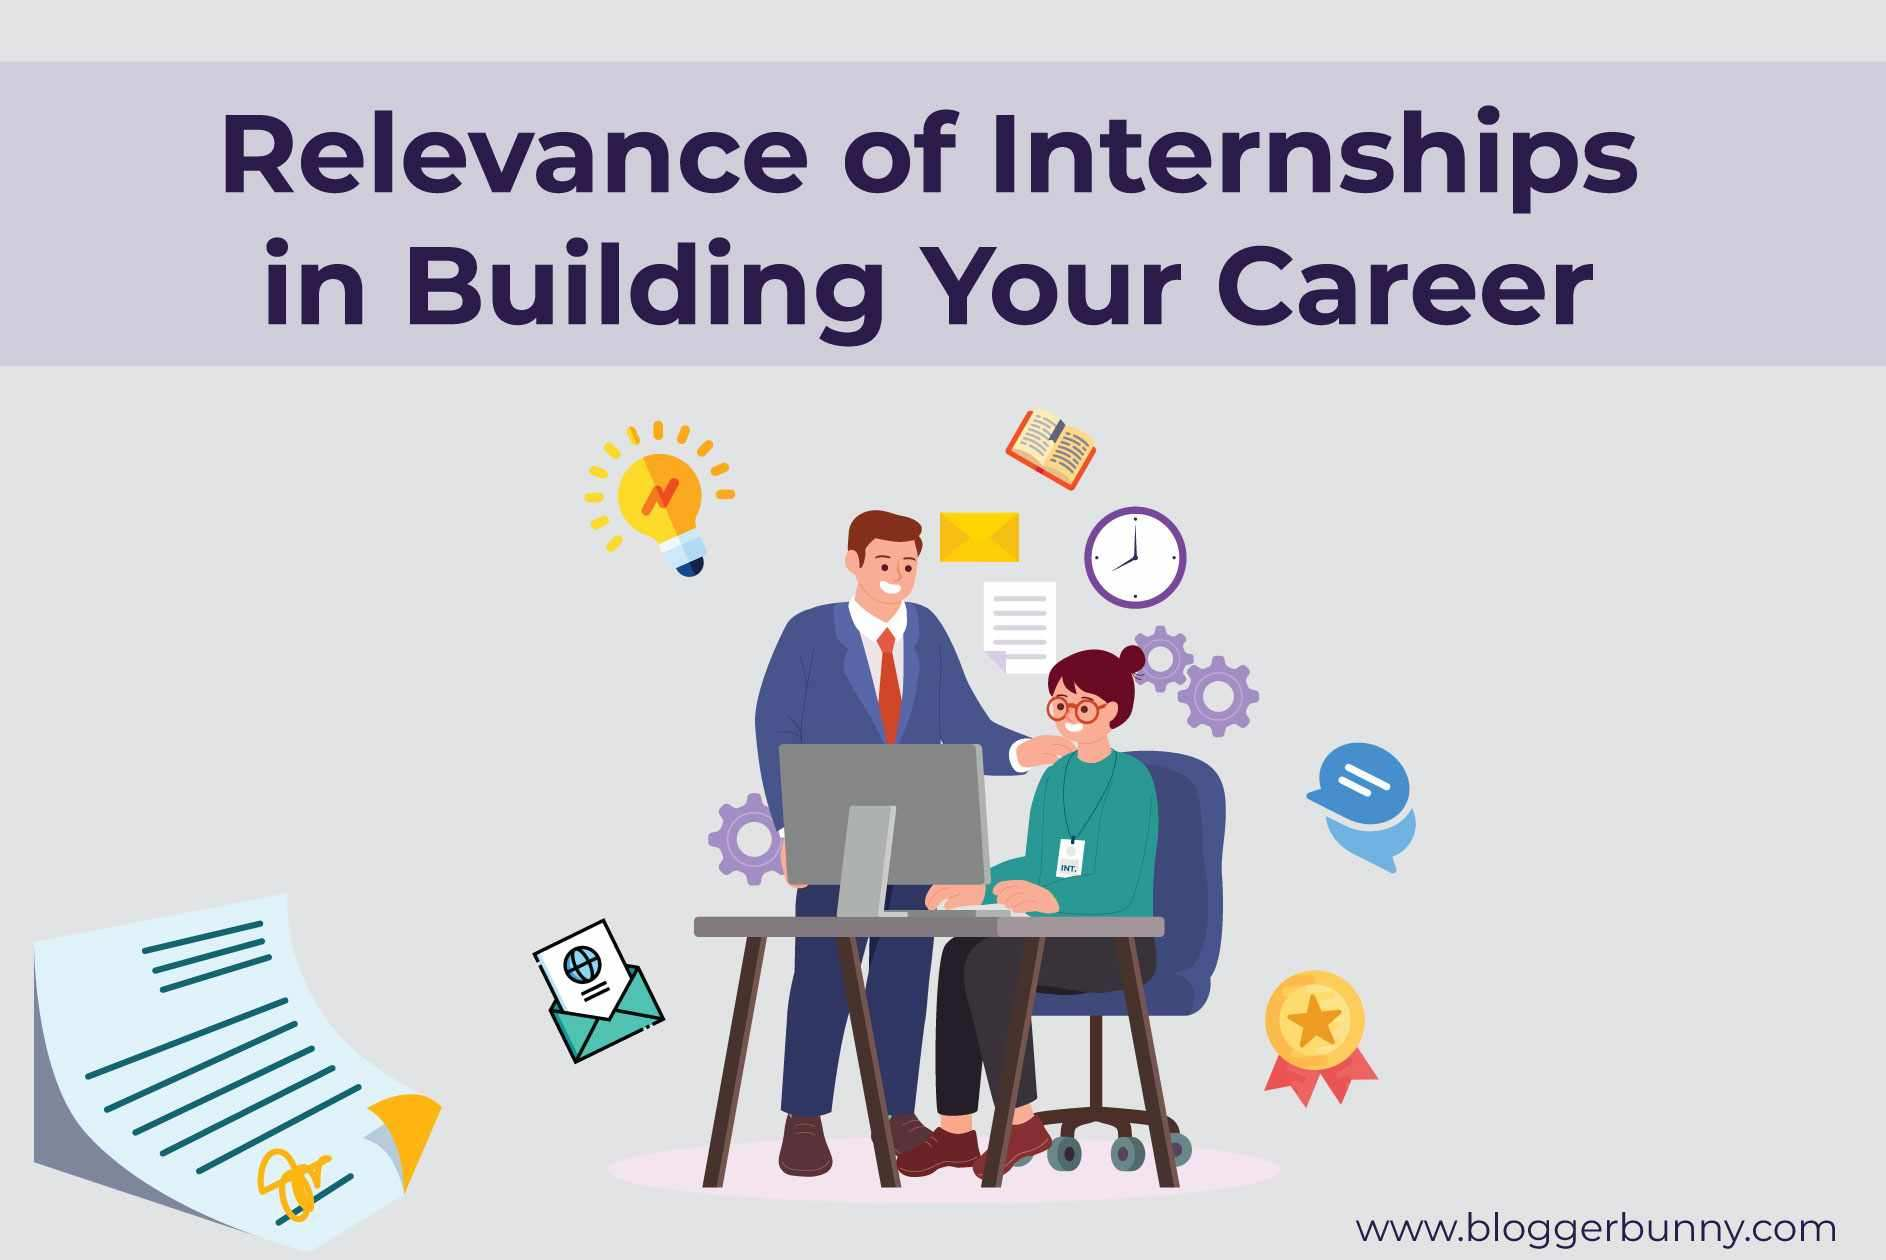 Relevance of Internships in Building Your Career